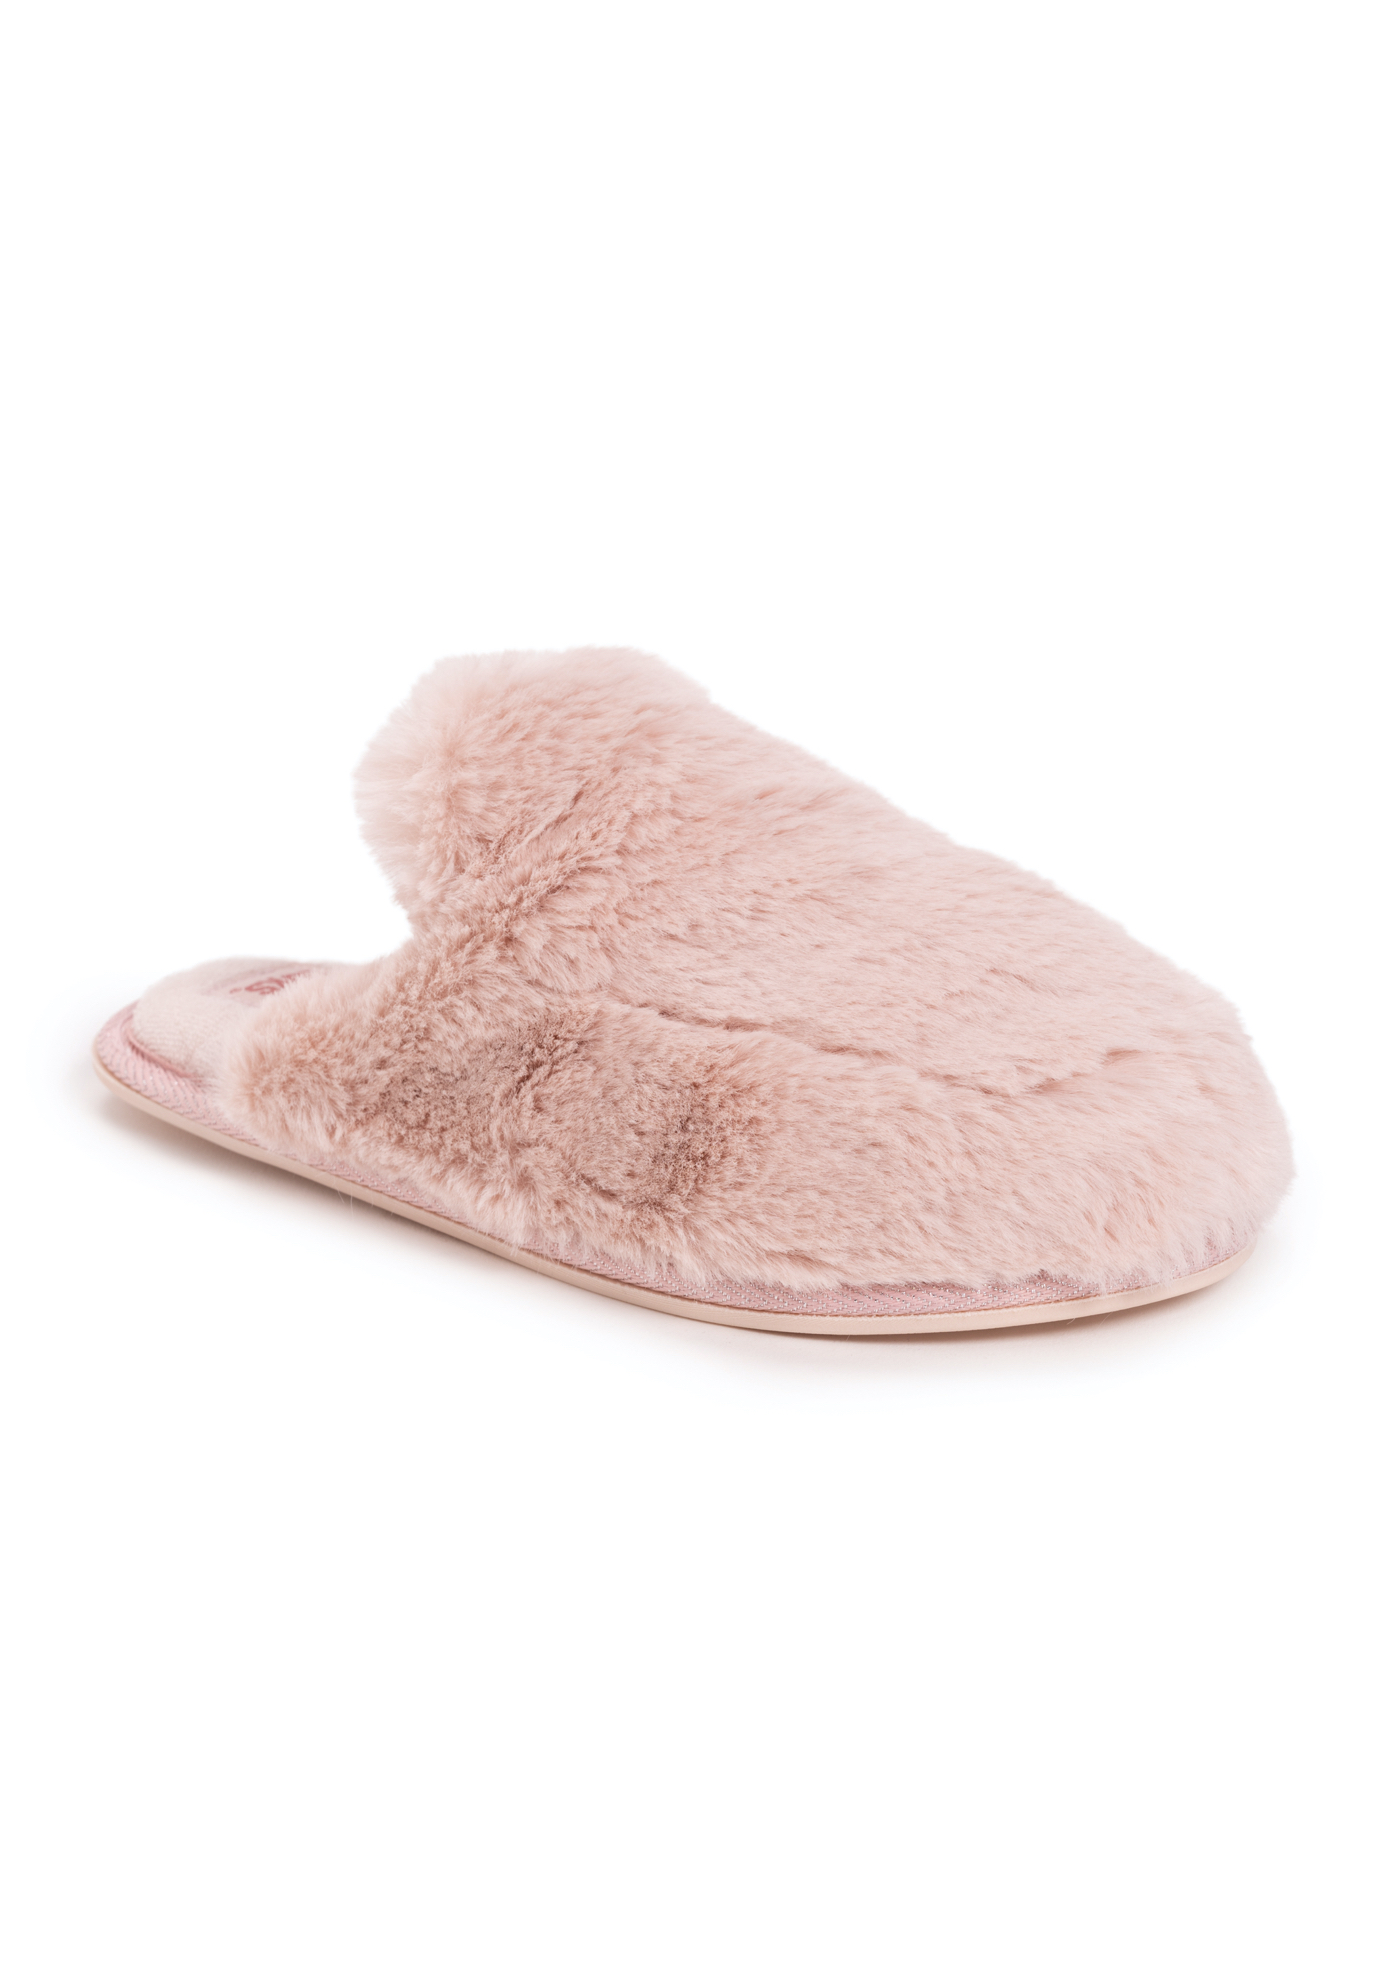 Capucine Slide Slippers,